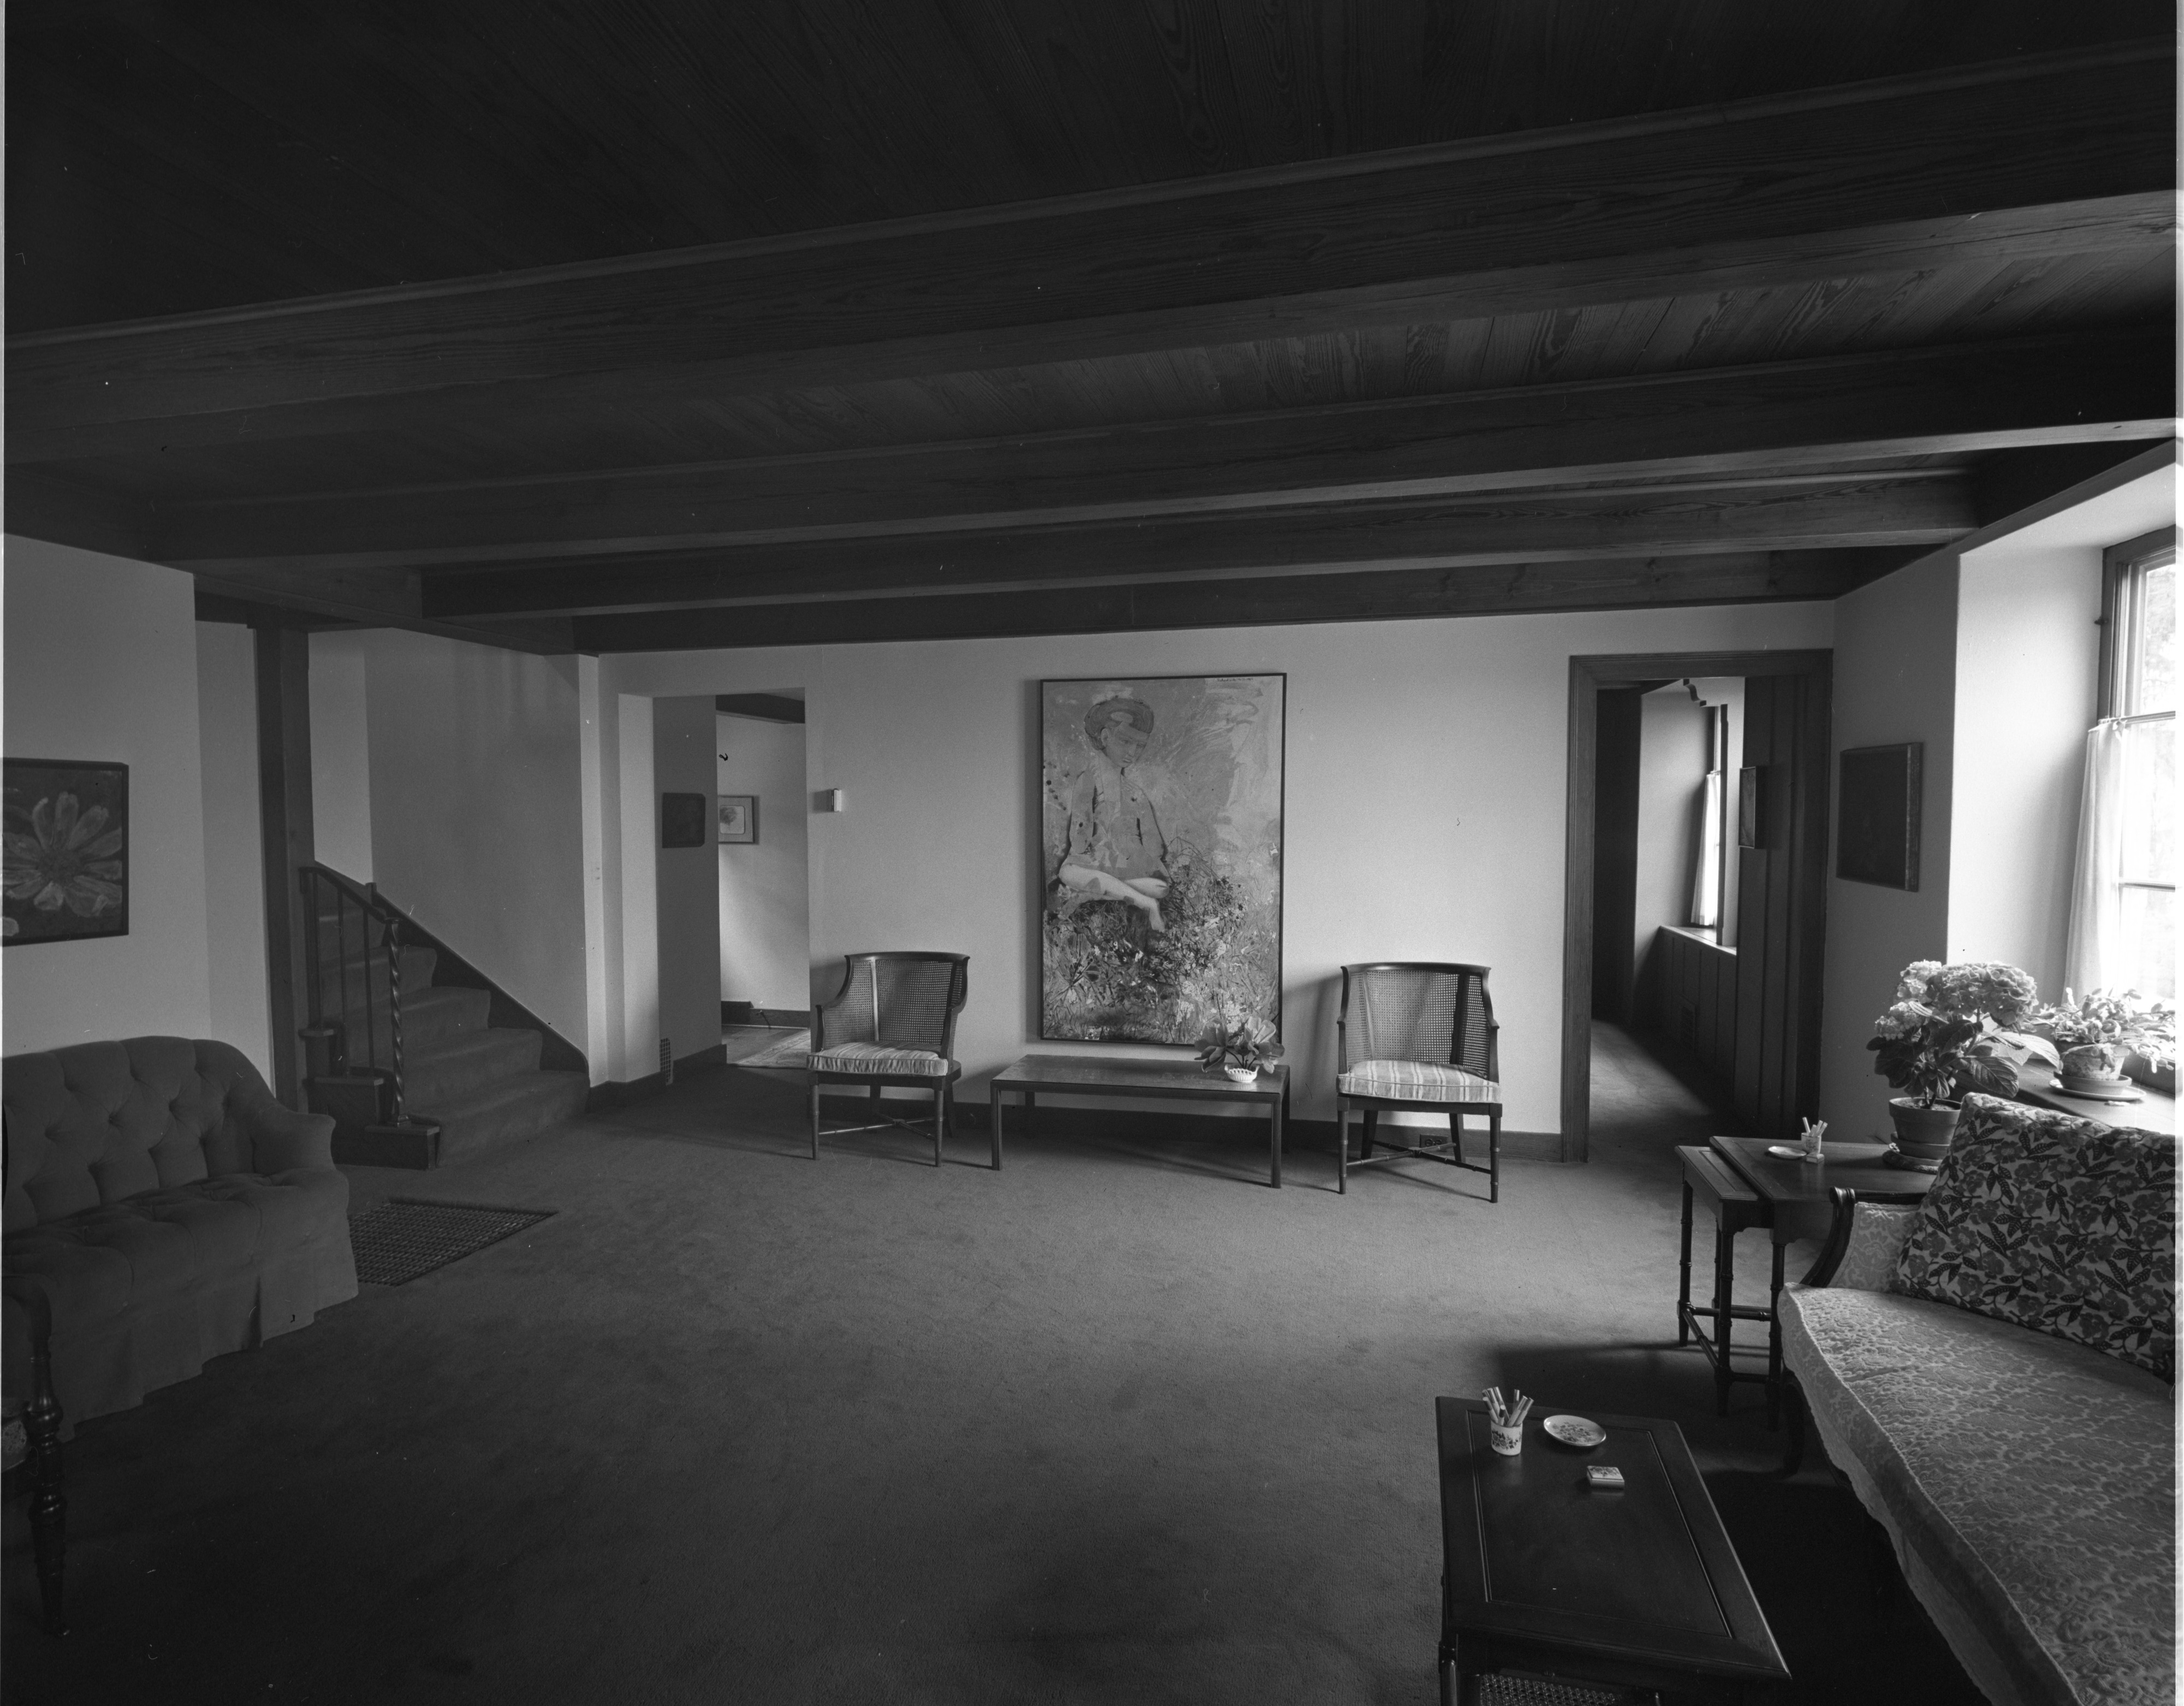 Wood-Beamed Ceilings at Dr. William C. Grabb Residence, April 1967 image